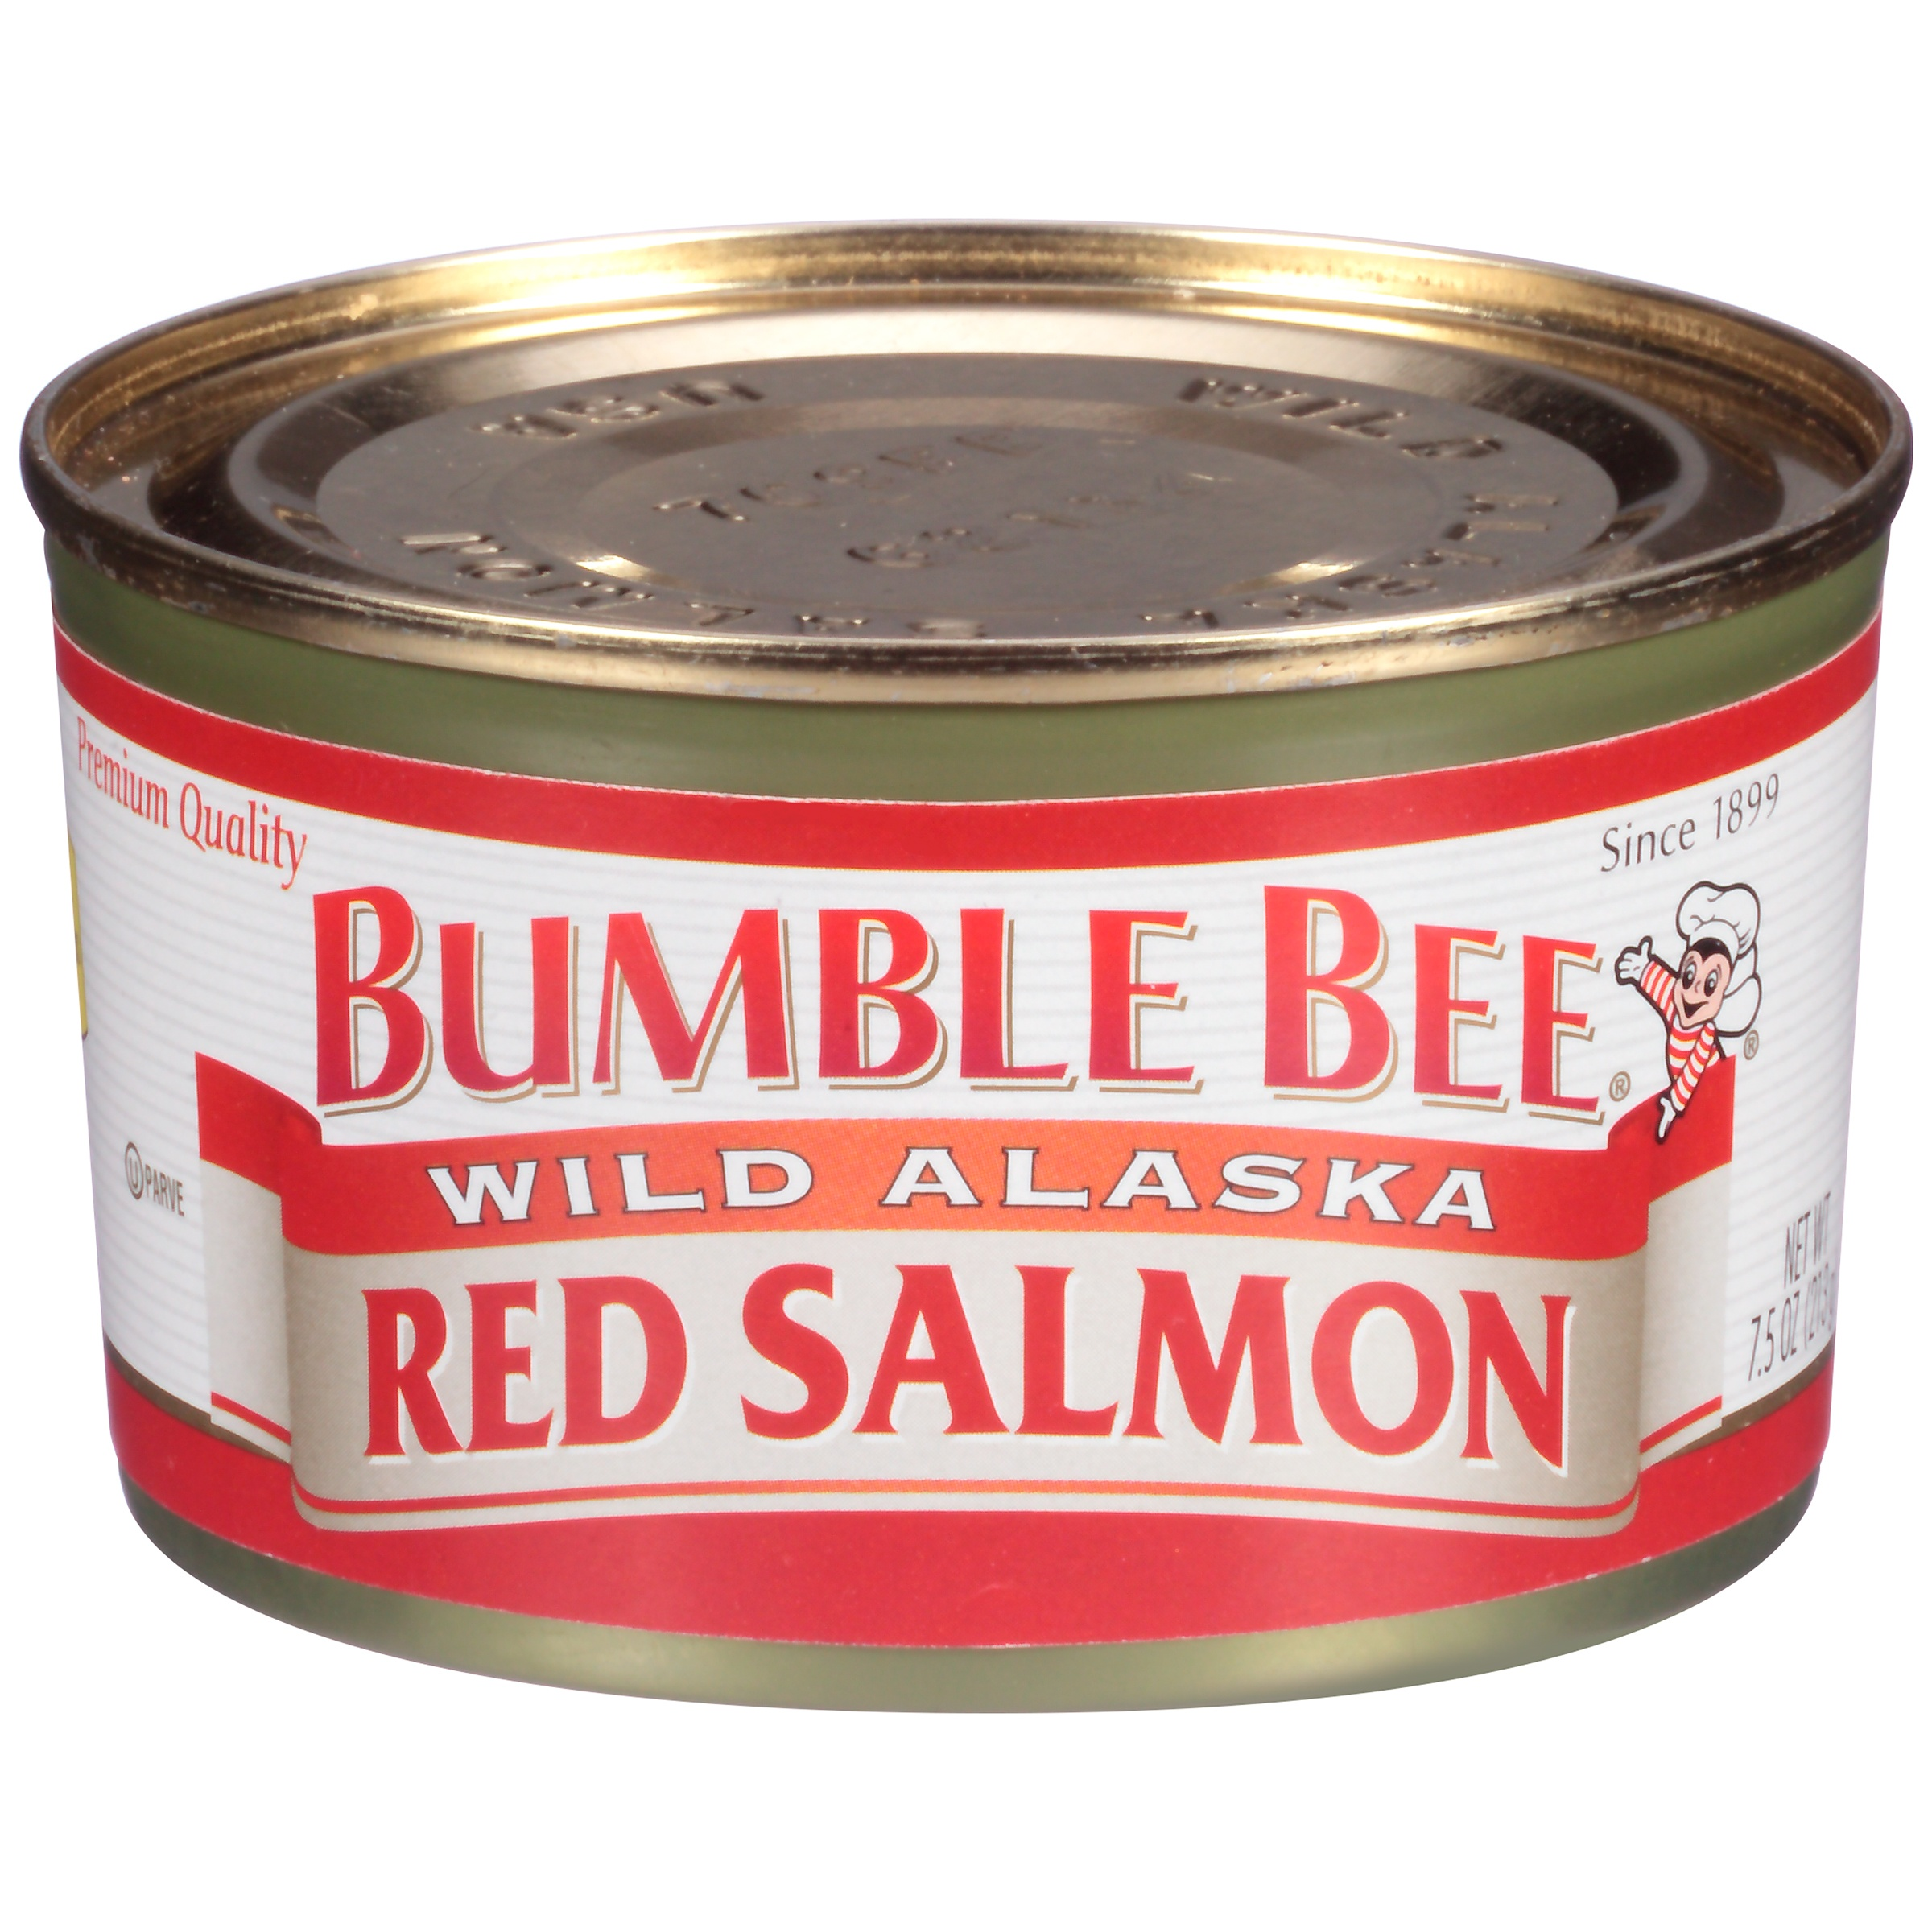 Bumble Bee Wild Alaskan Red Salmon, Ready to Eat Salmon, High ...